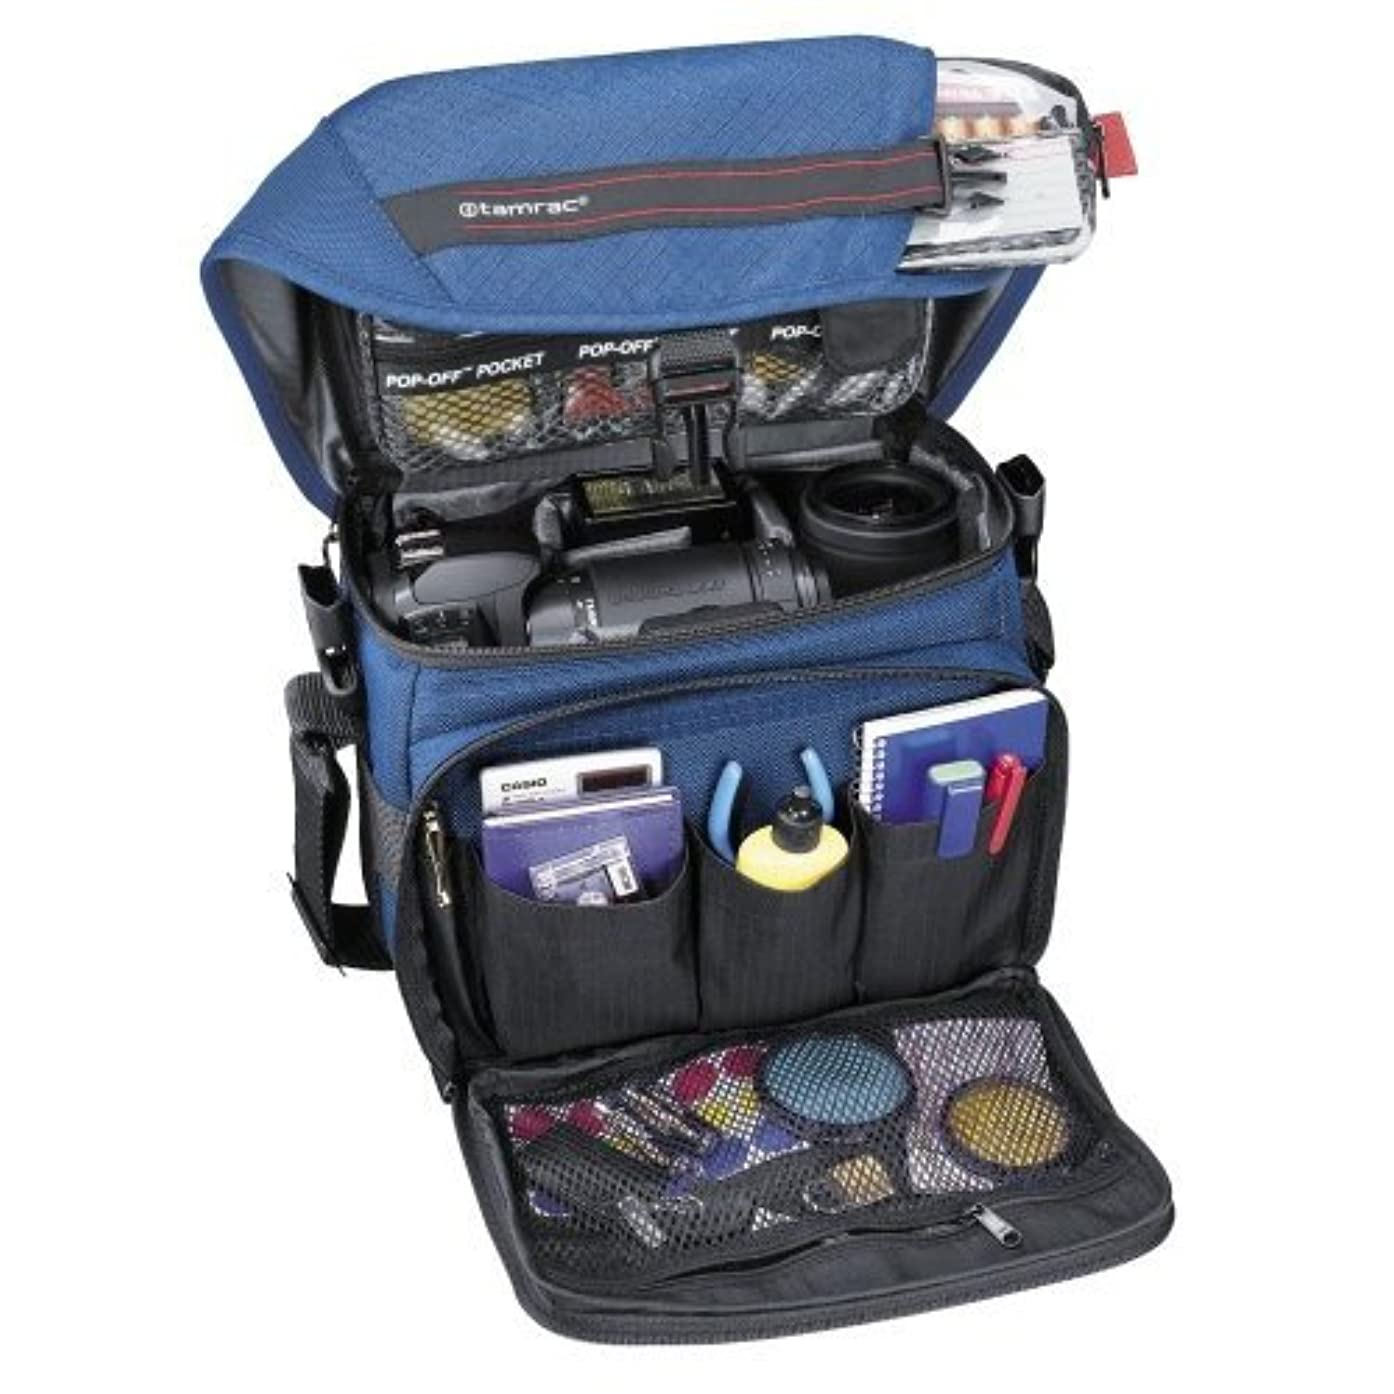 Tamrac 603 Zoom Traveler 3 Camera Bag (Navy)